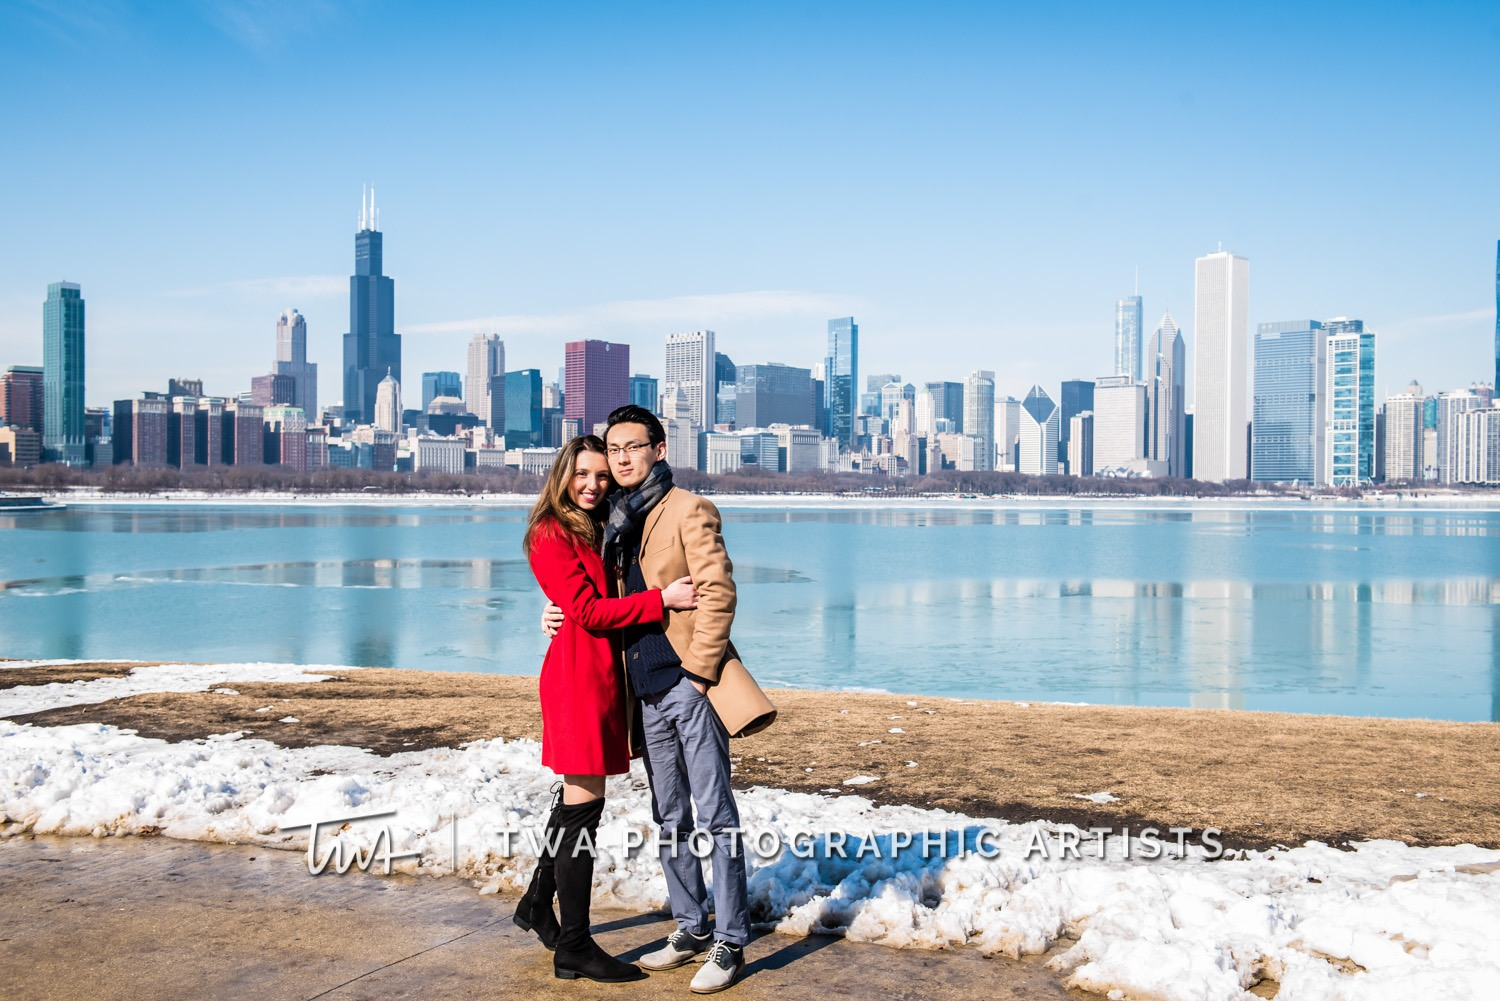 Chicago-Wedding-Photographer-TWA-Photographic-Artists-Museum-Campus_Zakharian_Ma_LS-003